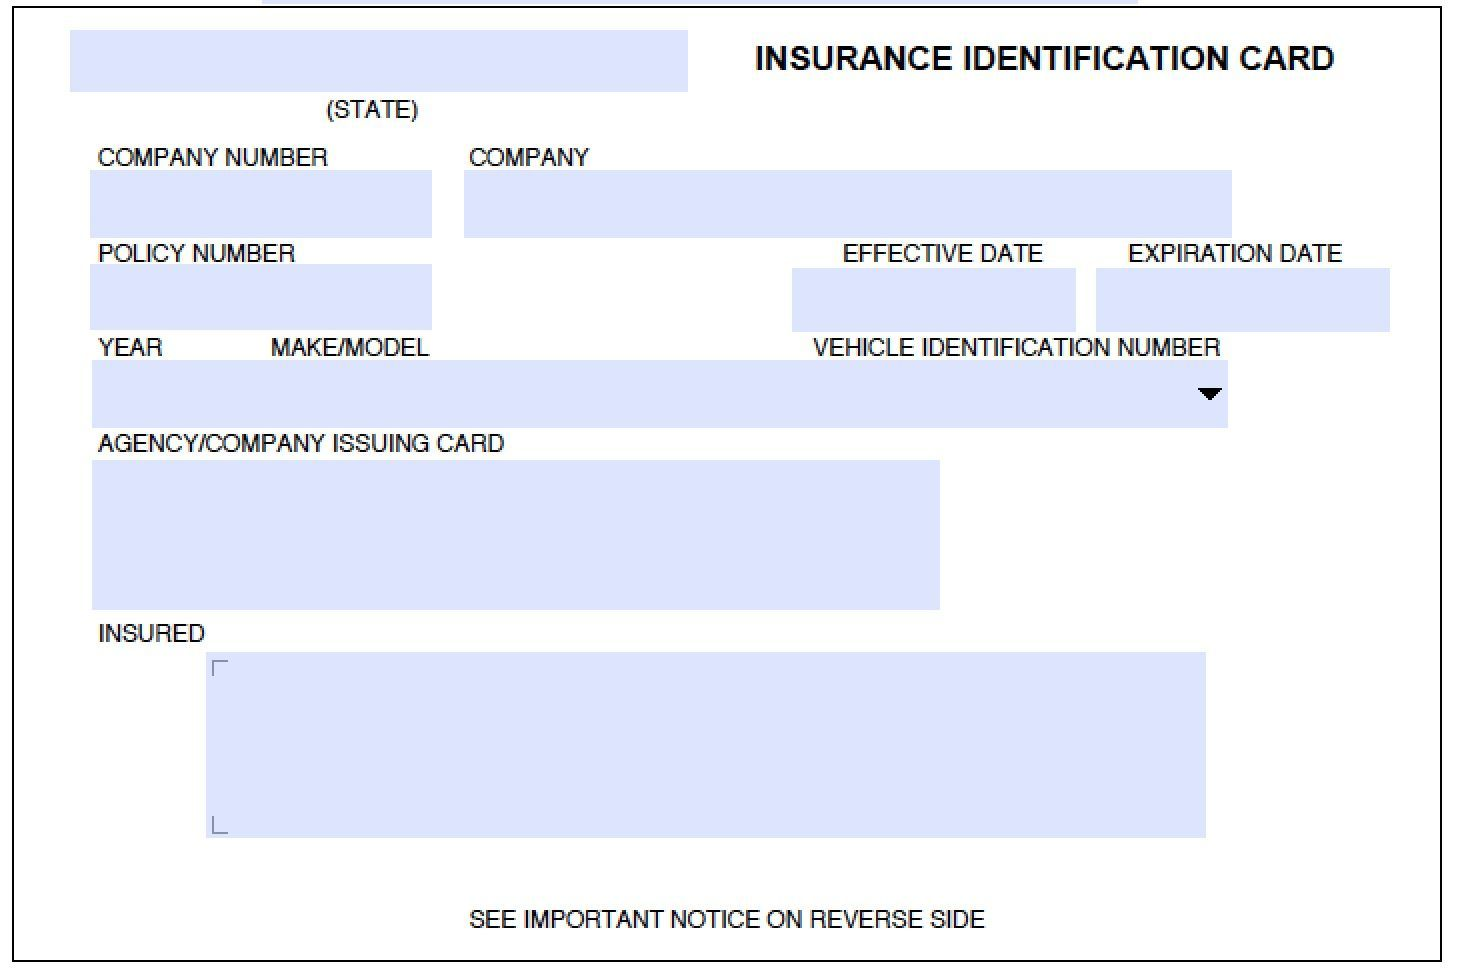 proof of insurance template download  Auto Insurance Card Template Free Download - http://www.valery ...